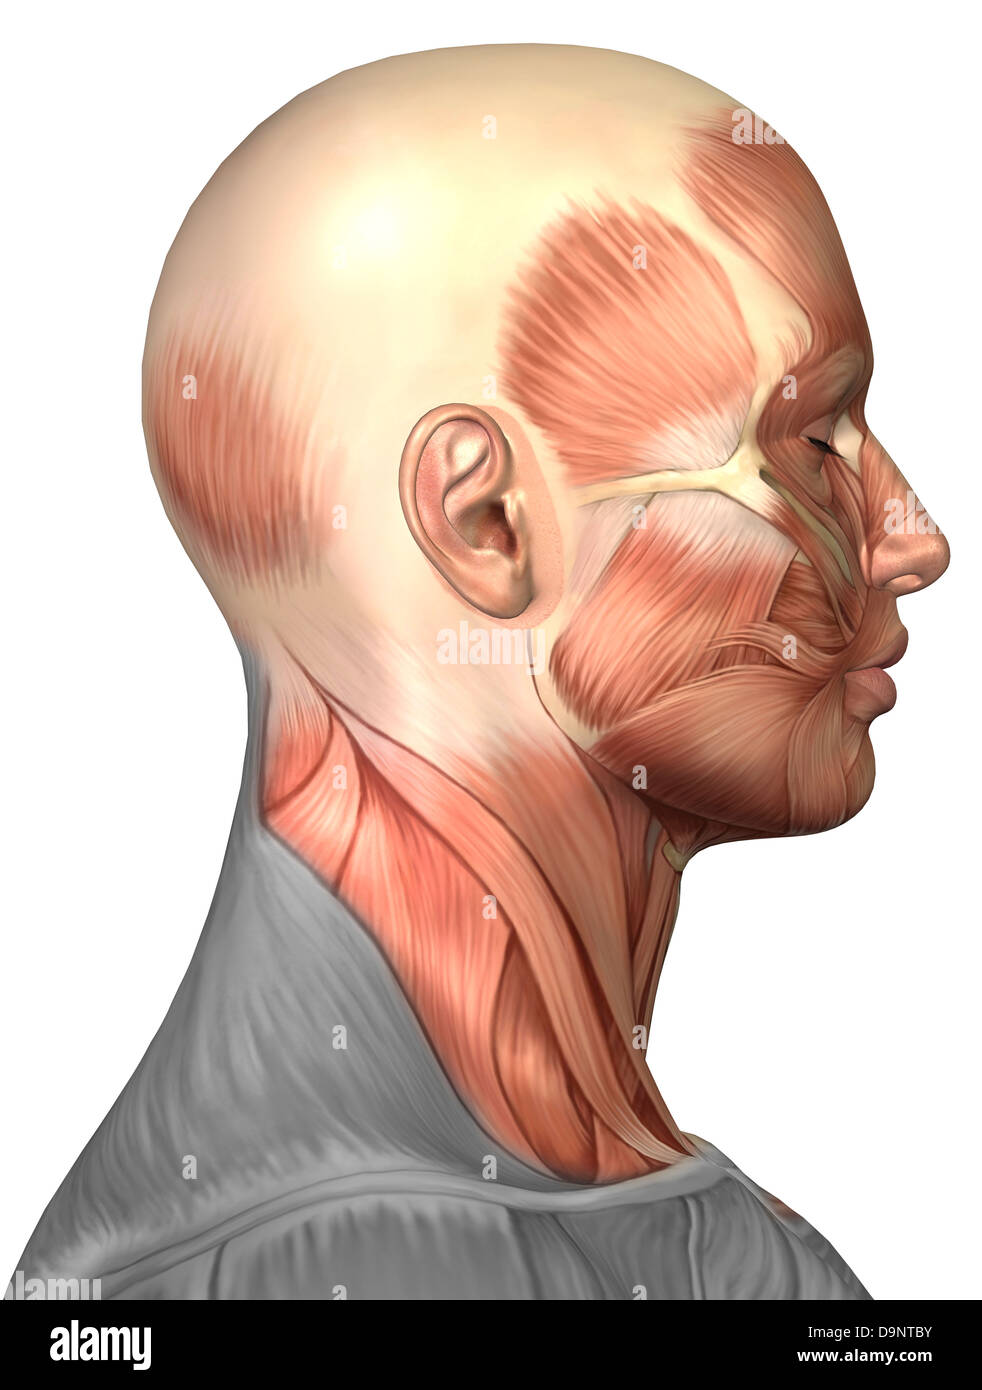 Anatomy of human face muscles, side view Stock Photo: 57643151 - Alamy